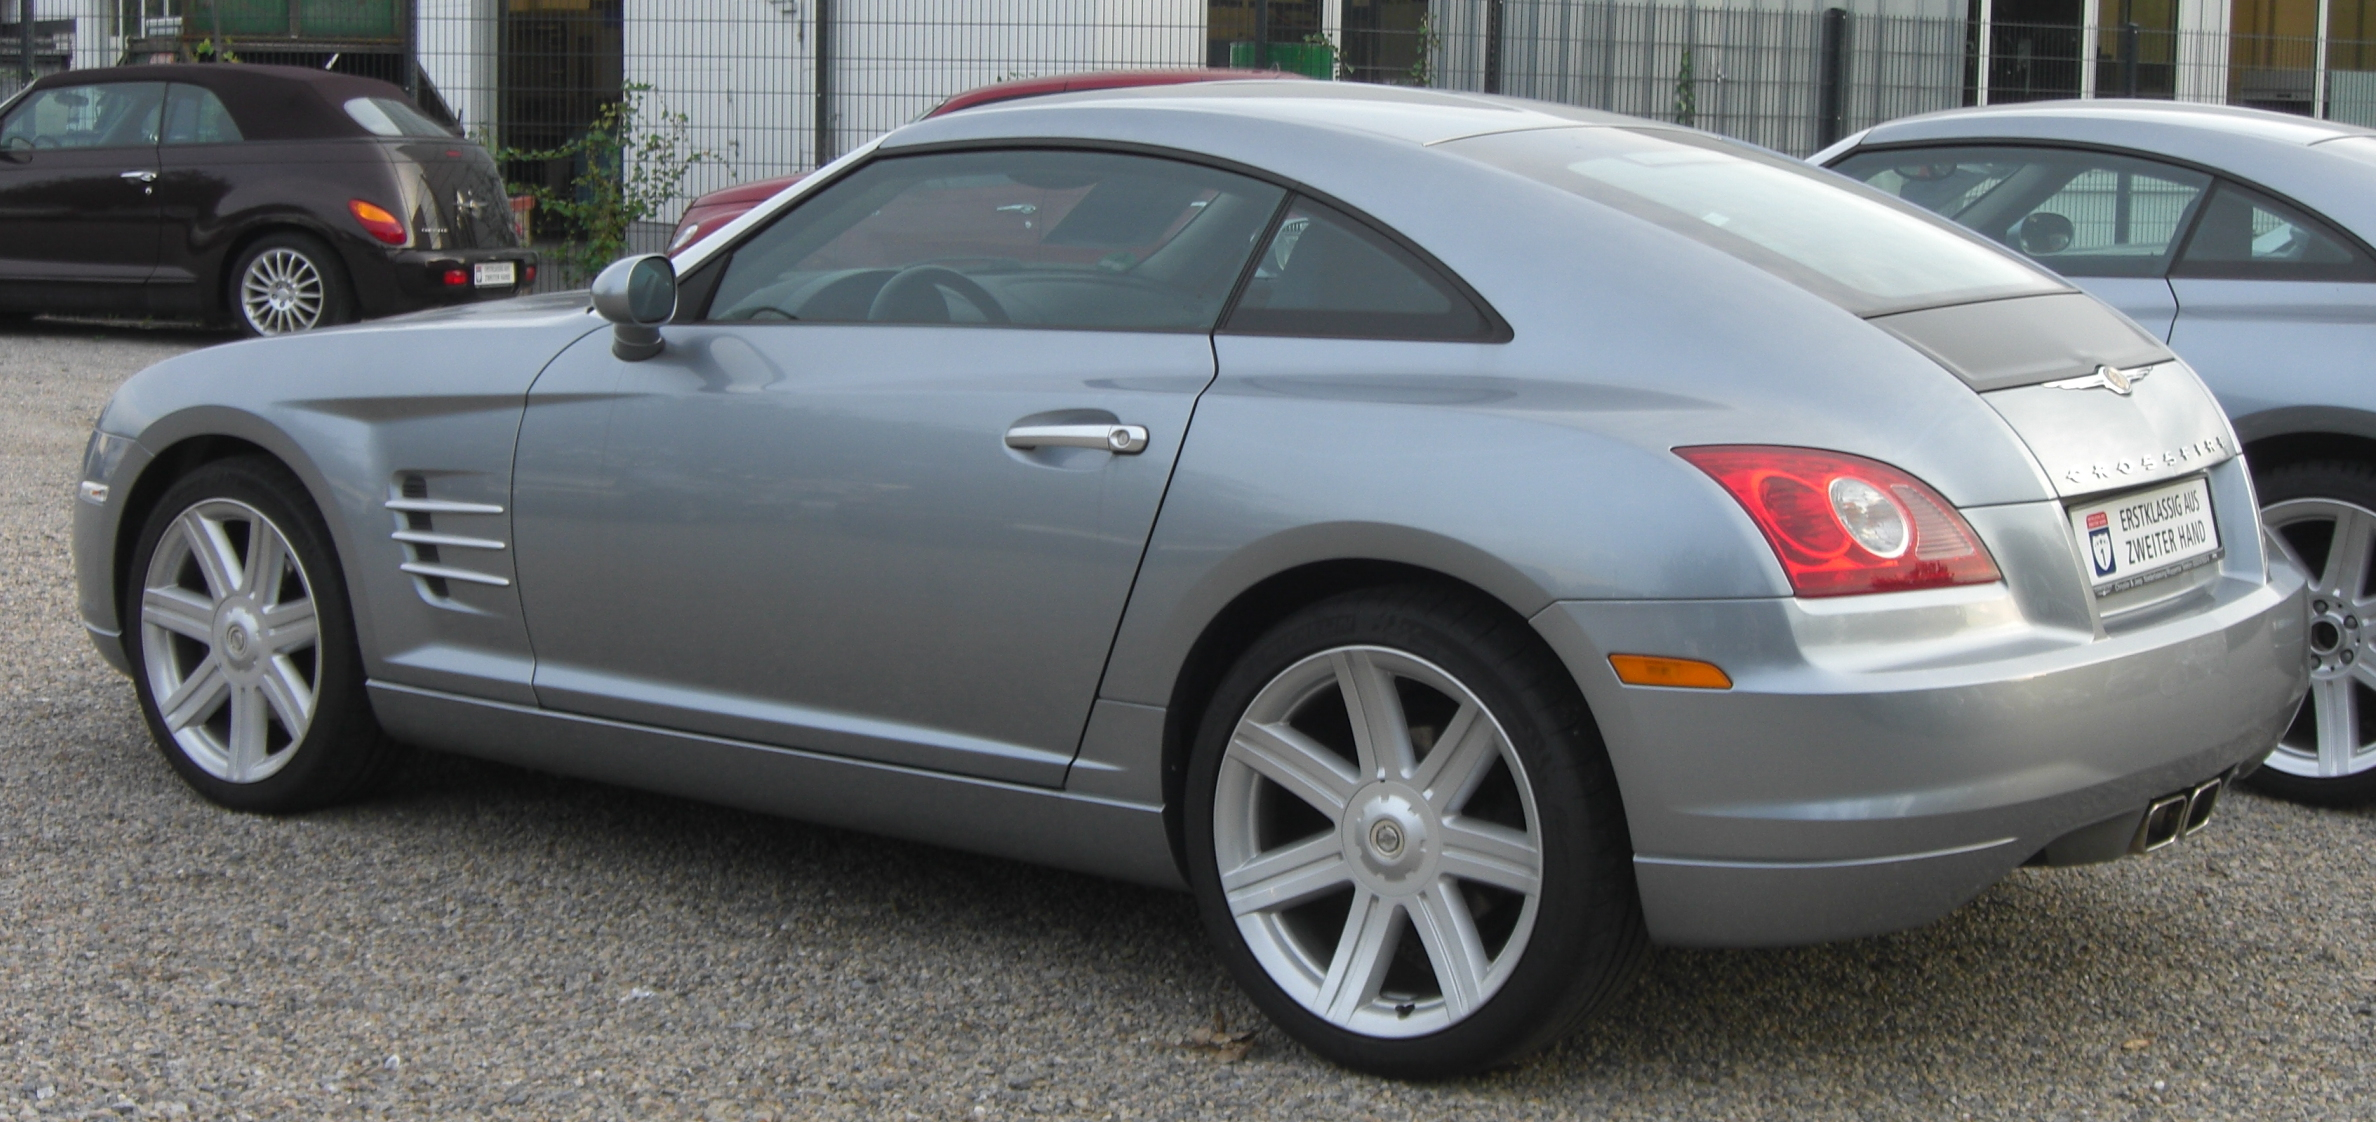 File:Chrysler Crossfire rear.jpg - Wikimedia Commons